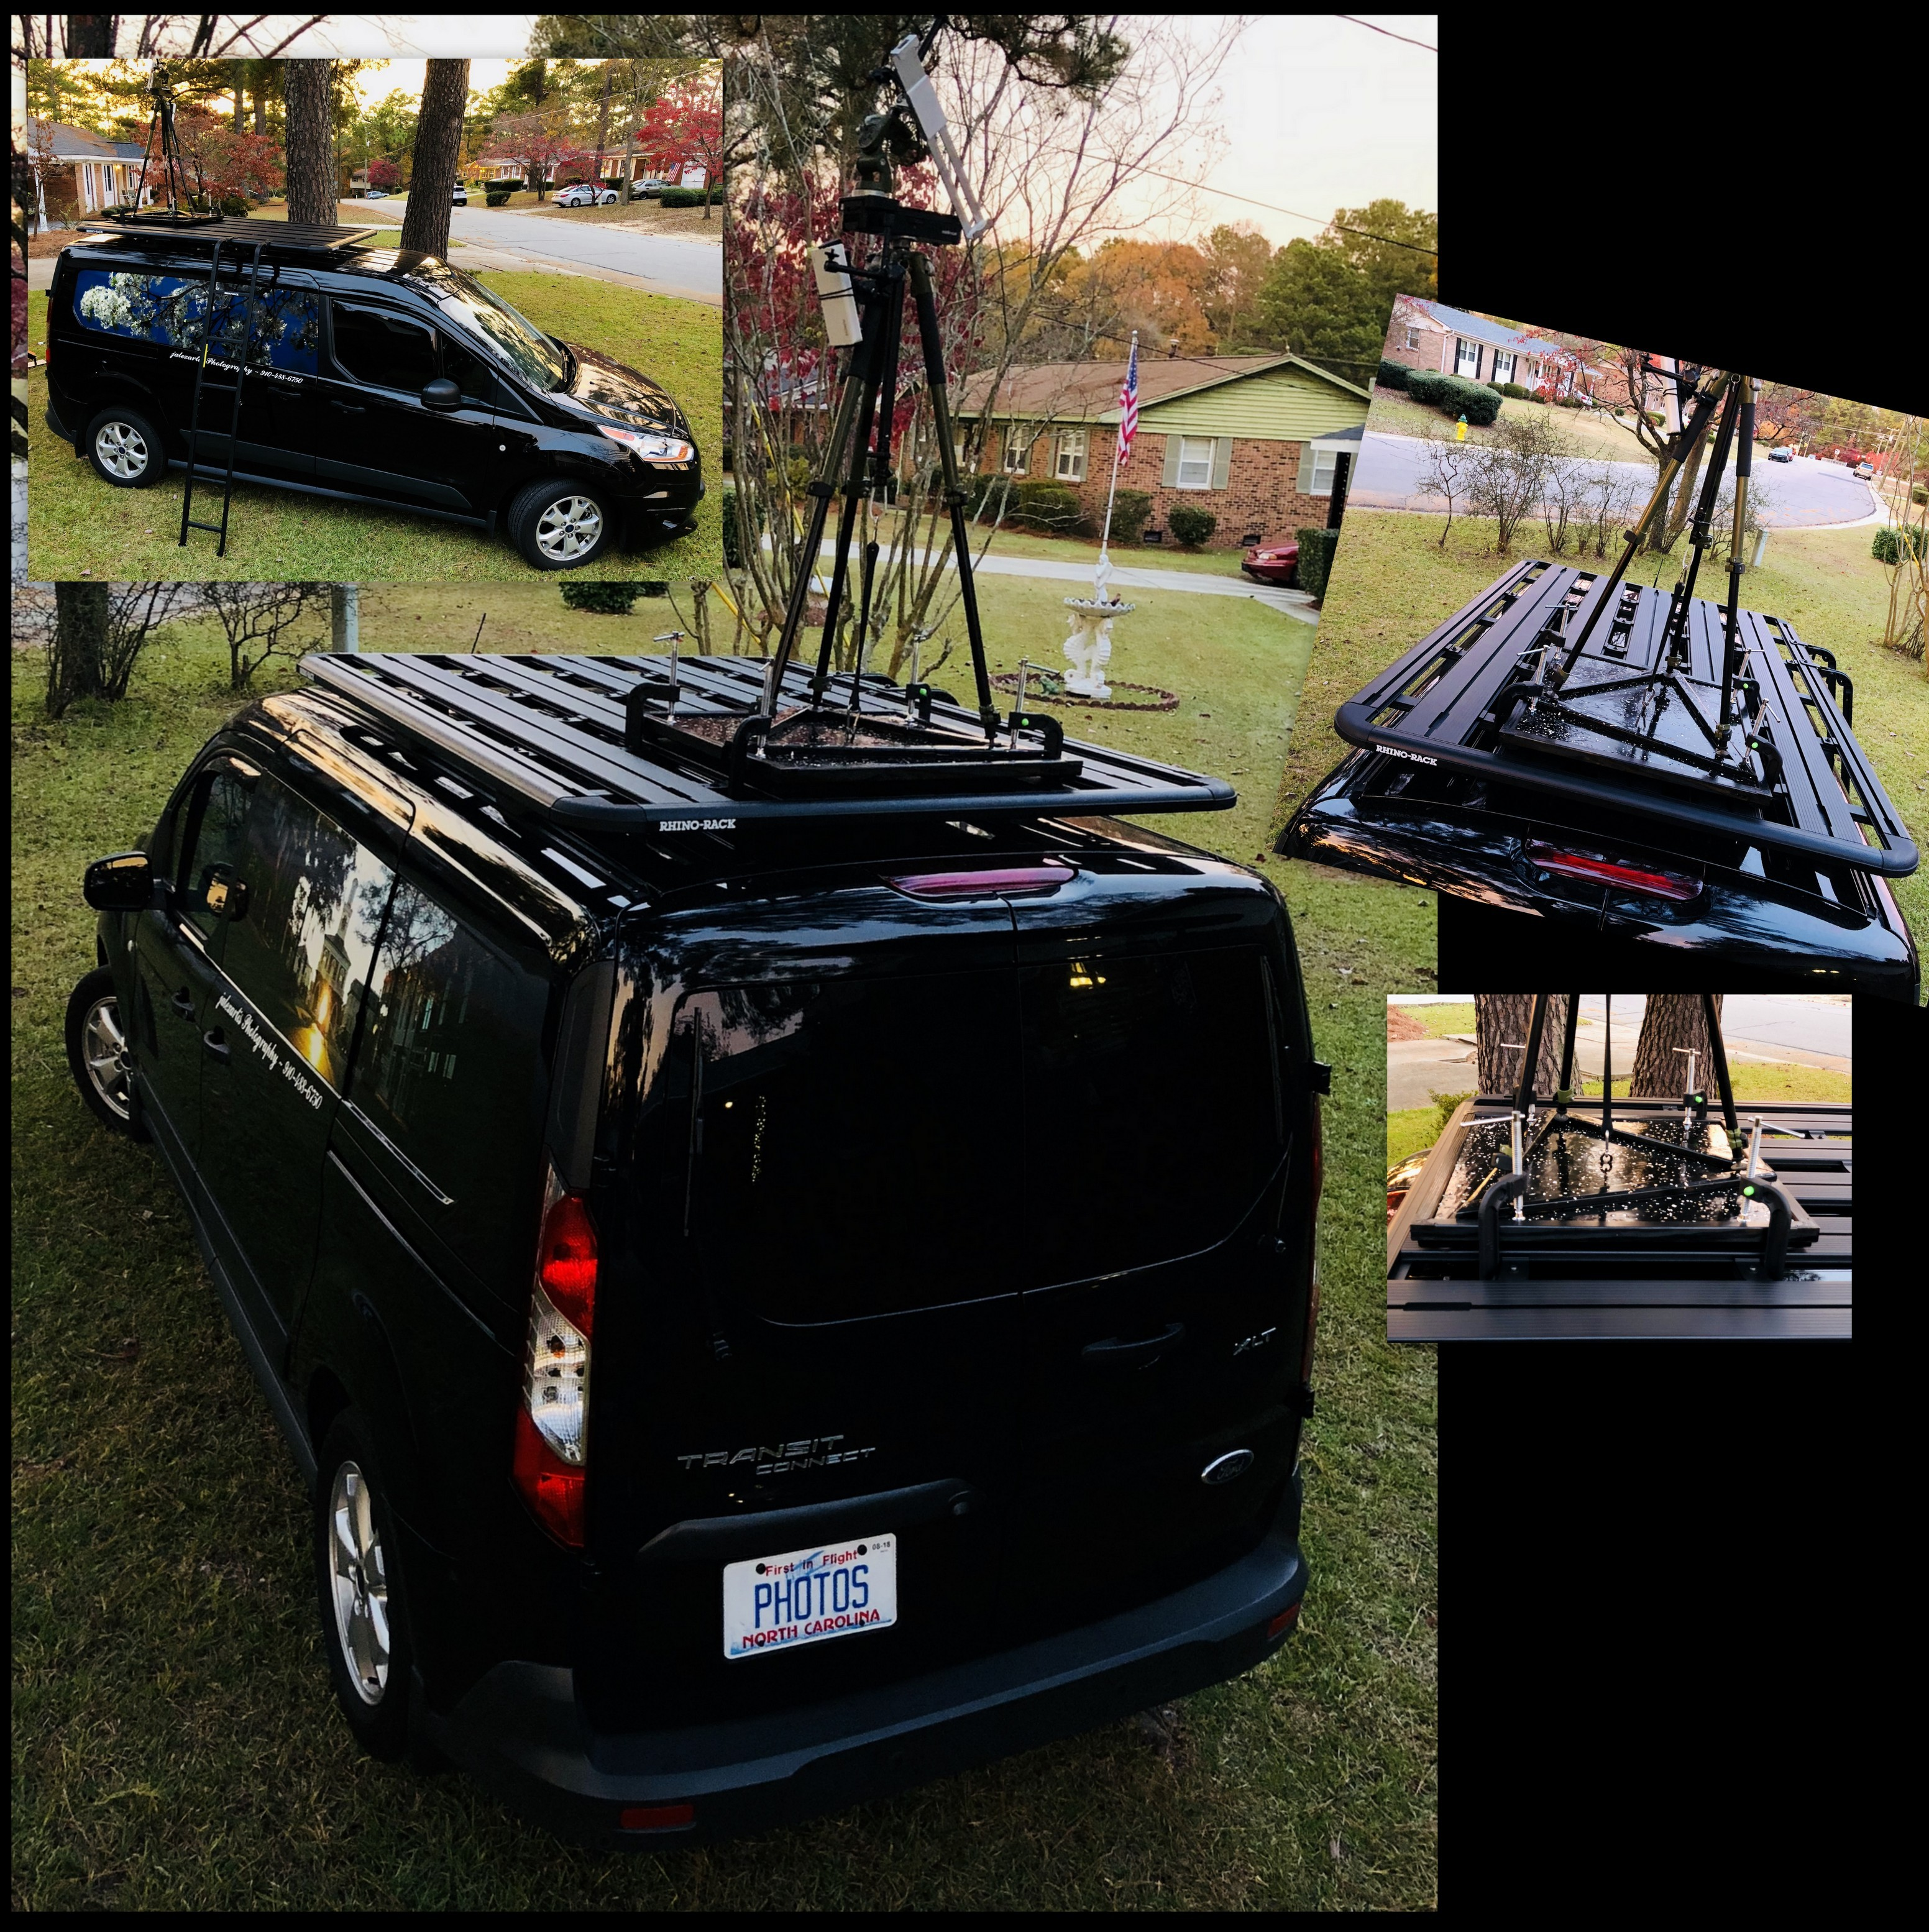 DIY [#36] ~ Tripod Holder for Rhino Rack Pioneer Platform–Clamped & Loaded, 11/23